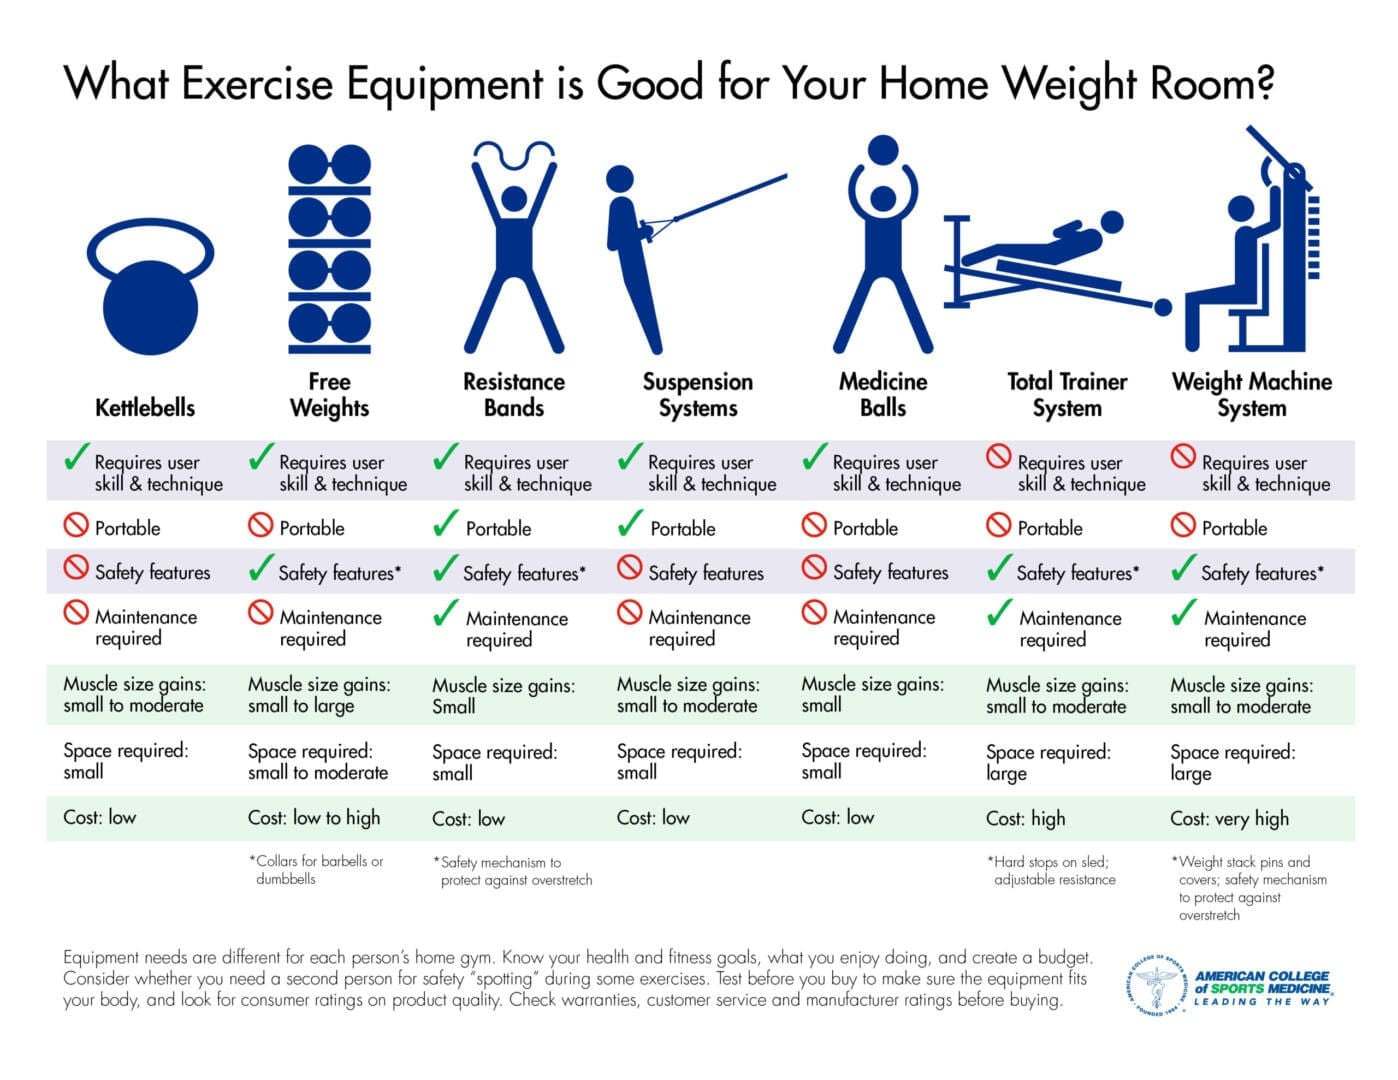 Low Cost Exercise for Your Home Gym